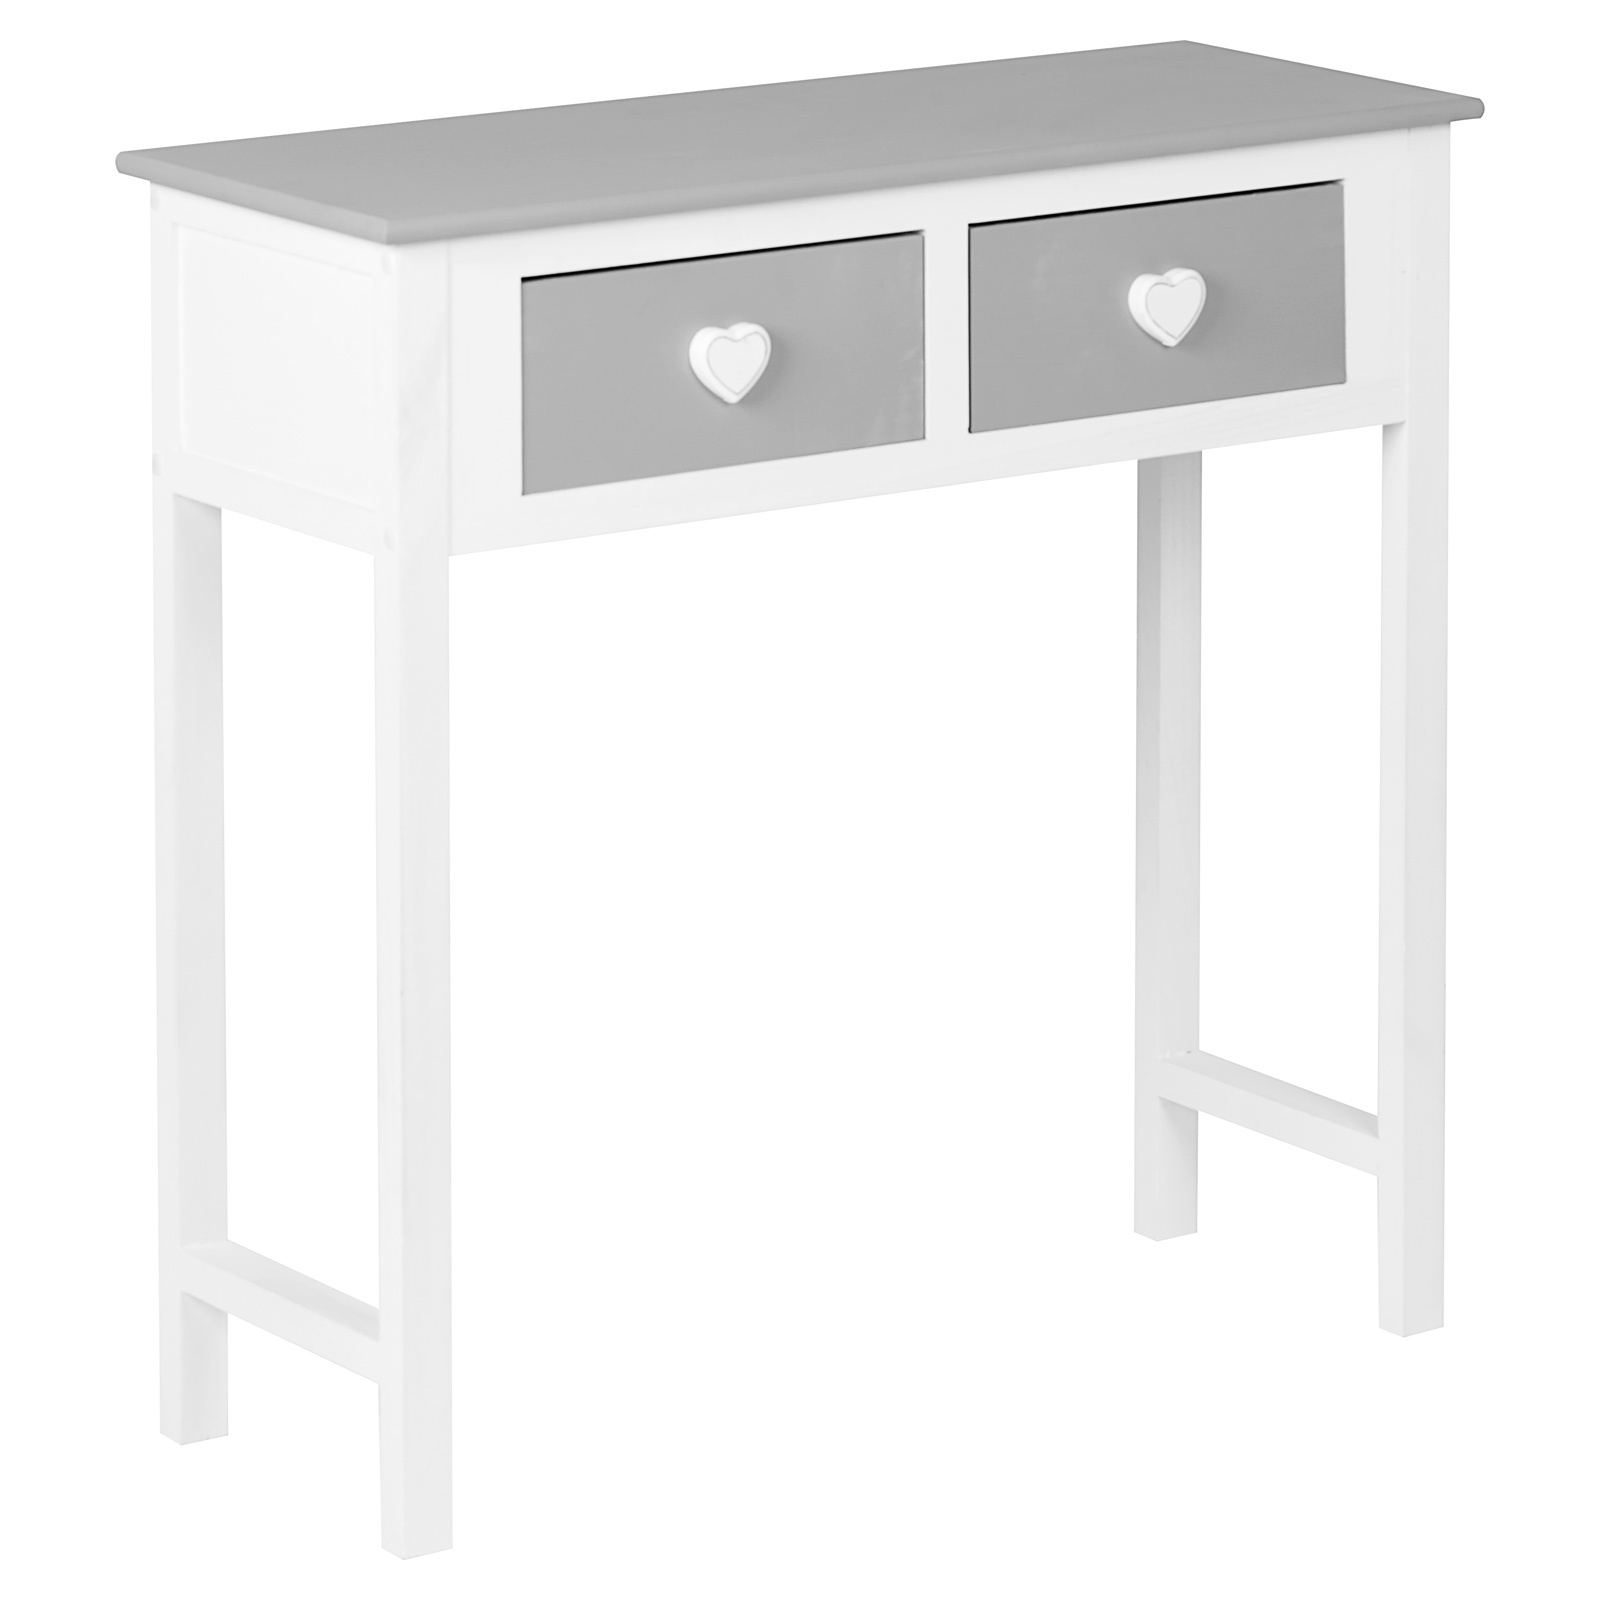 Girls Dressing Table Details About Hartleys White Grey 2 Drawer Heart Dressing Console Side Table Girls Bedroom